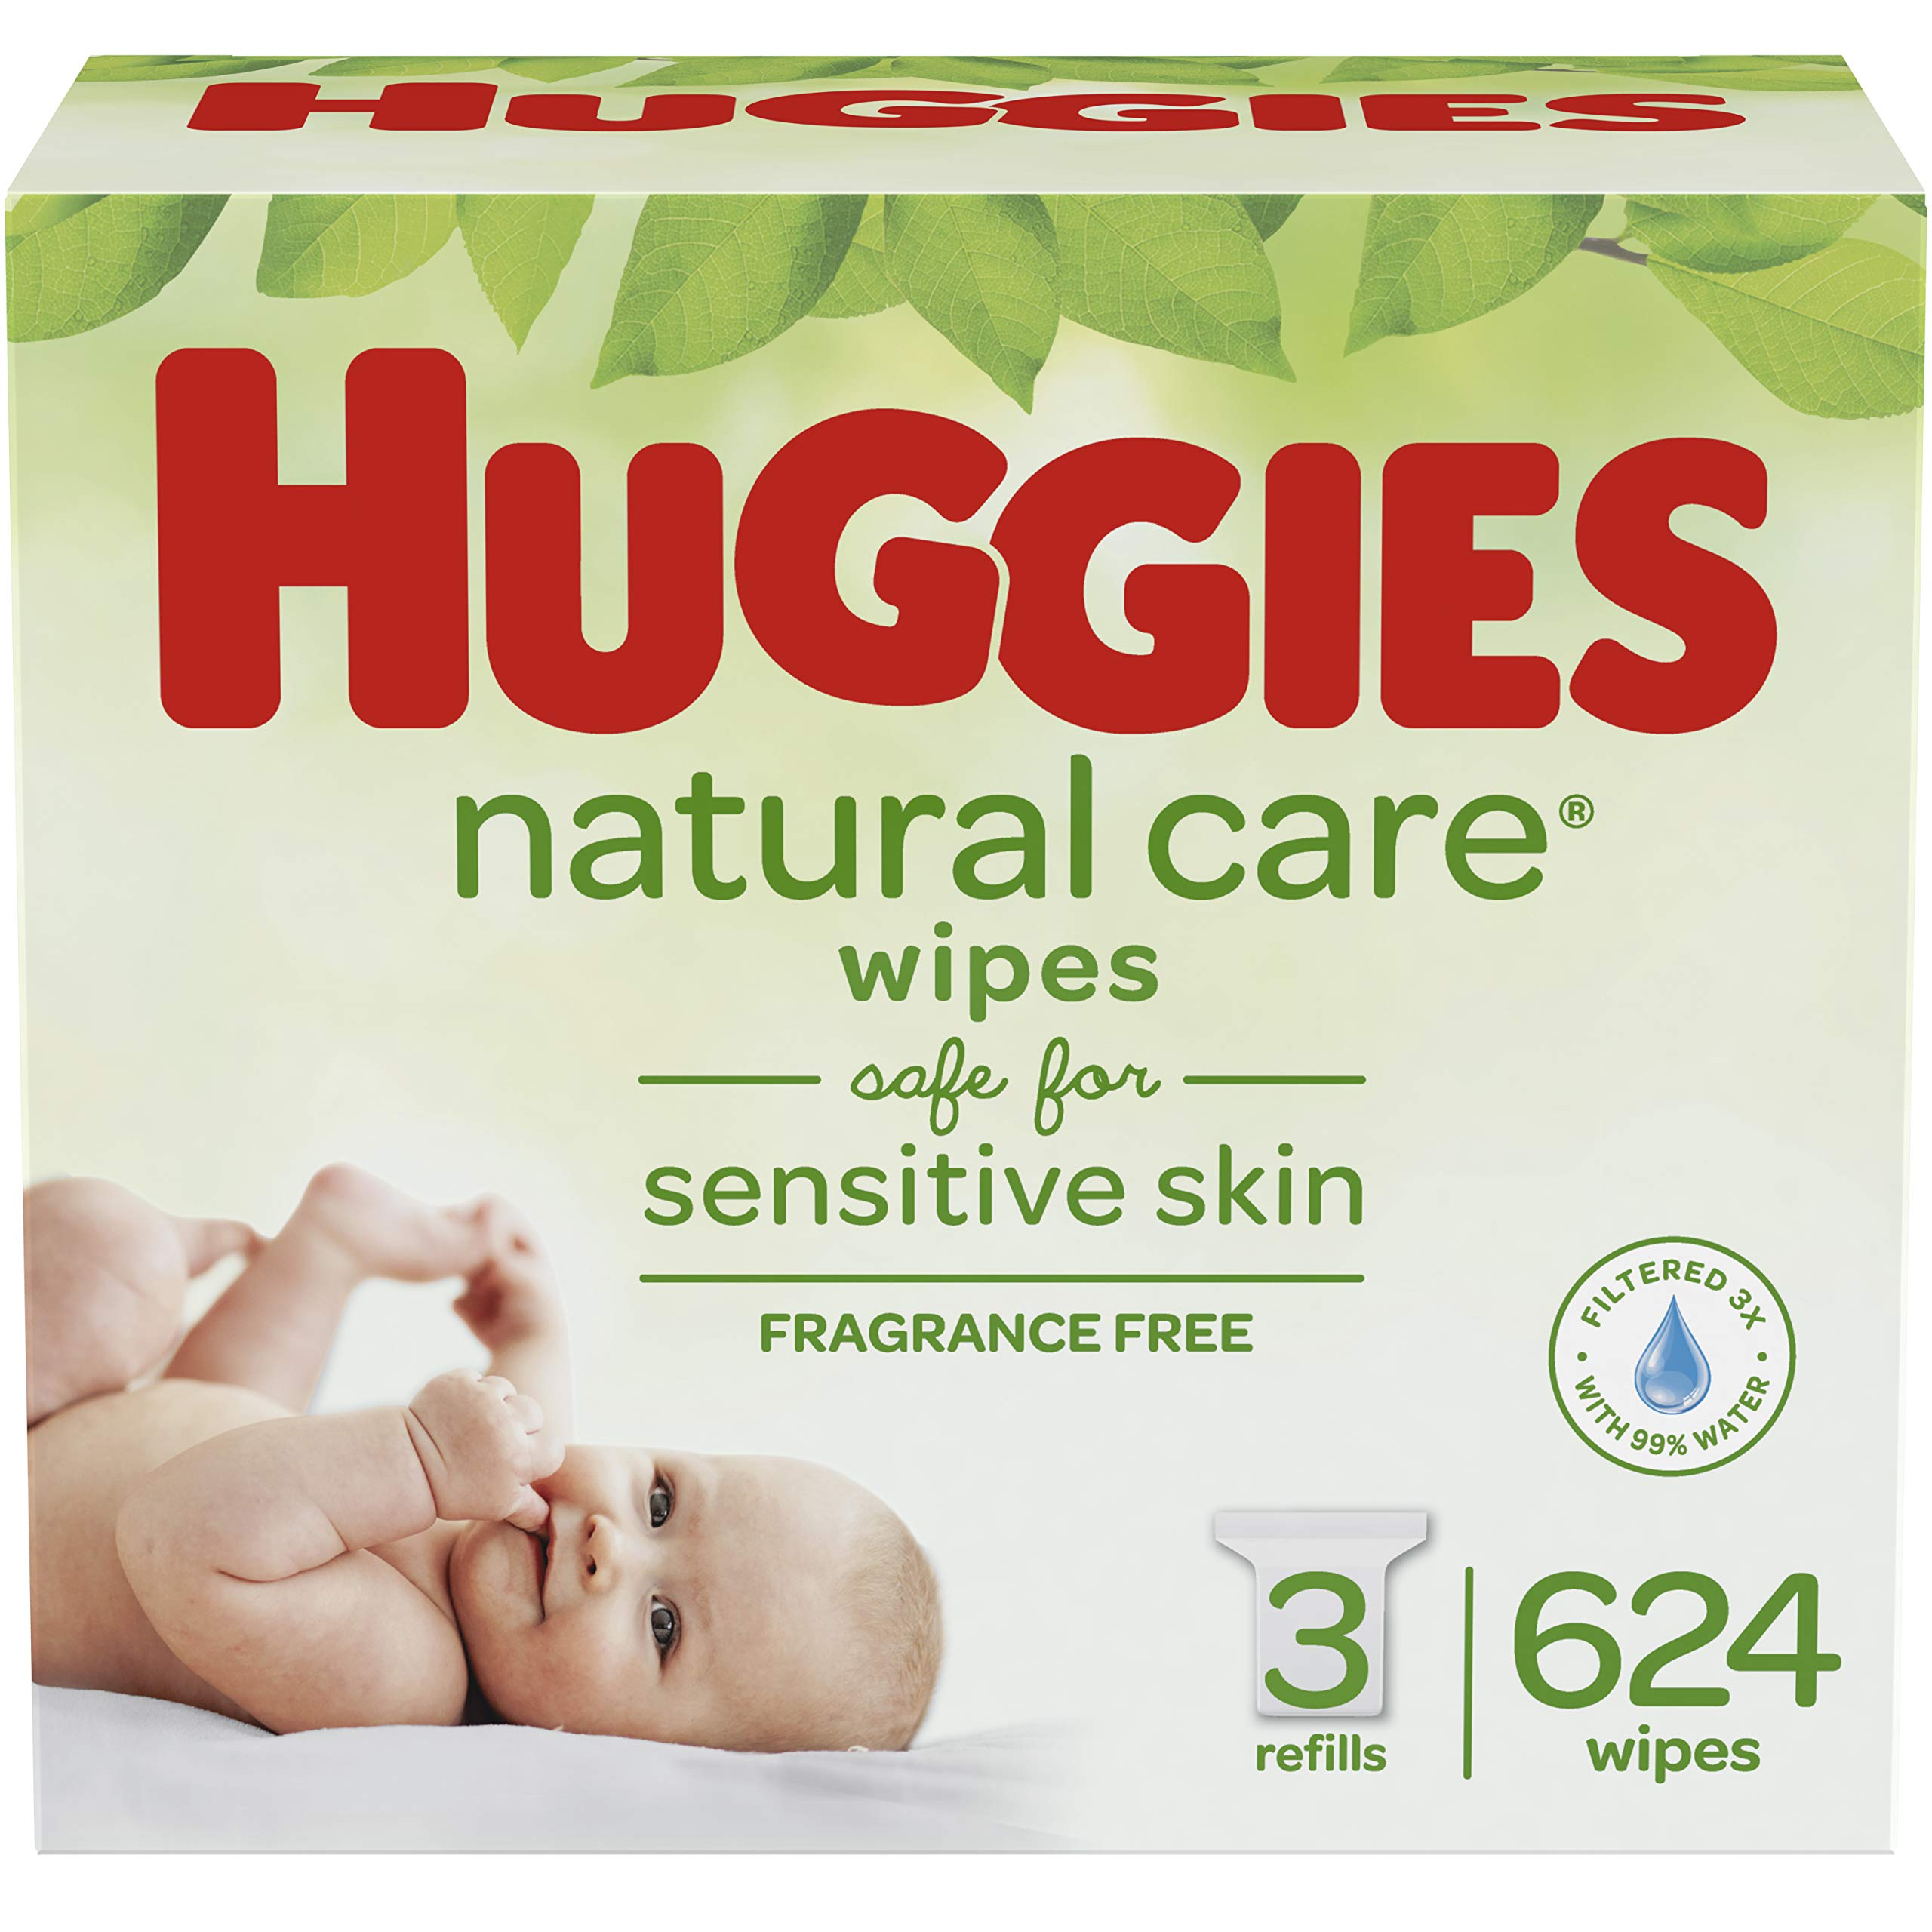 HUGGIES Natural Care Unscented Baby Wipes, Sensitive, 3 Refill Packs (624 Total Wipes) by HUGGIES